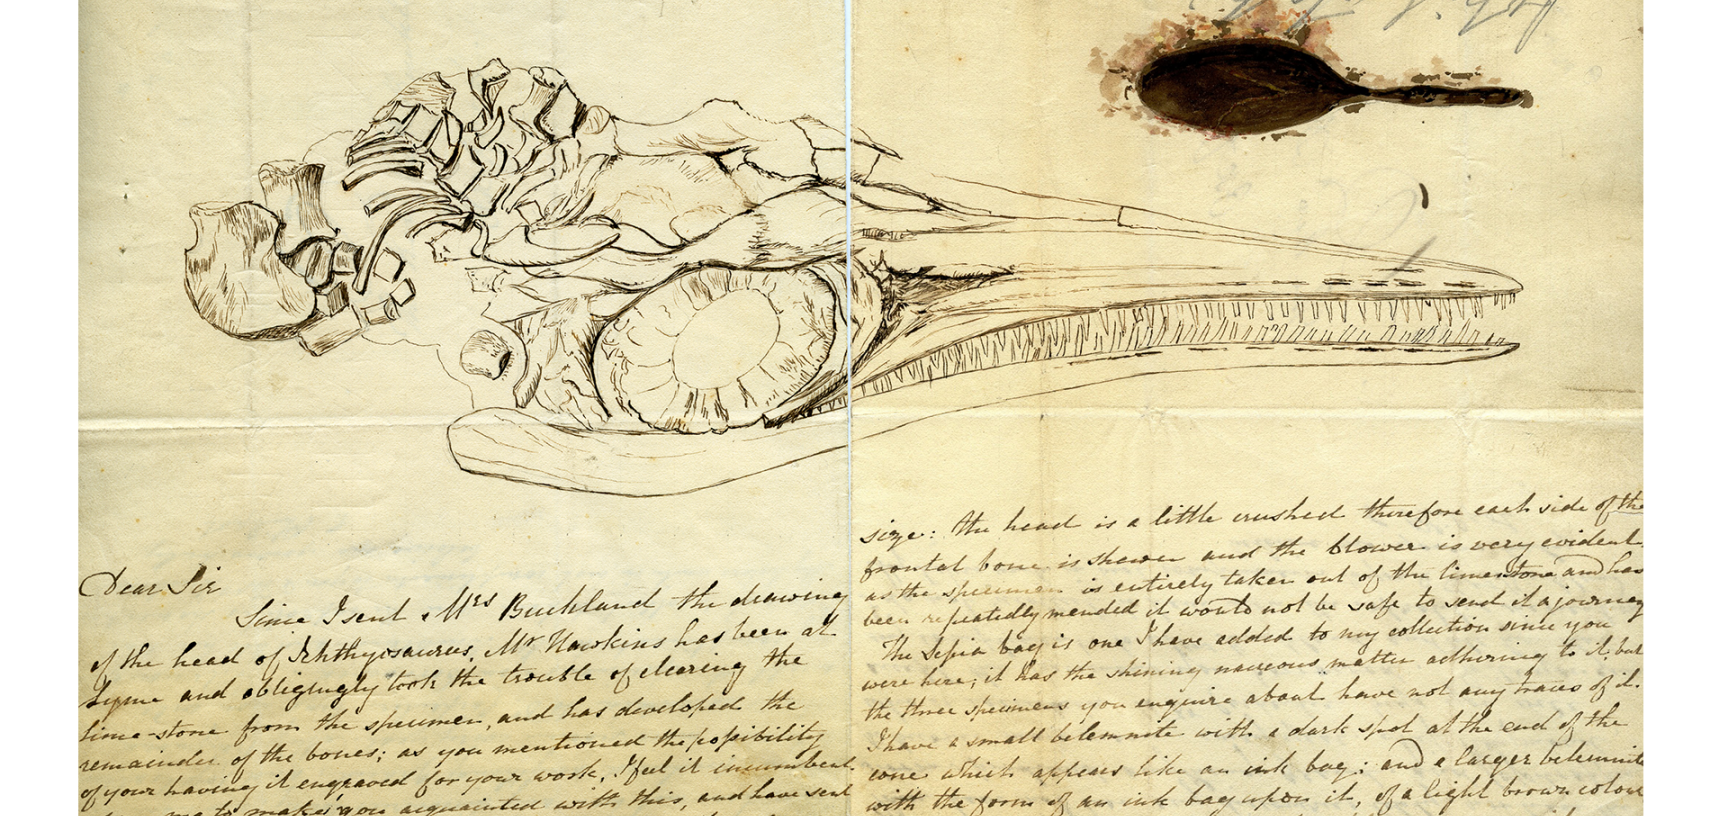 A letter from Elizabeth Philpot to William Buckland, c. 1833, containing a sketch of the same ichthyosaur skull after preparation, and a fossil ink sac painted in fossil squid ink.